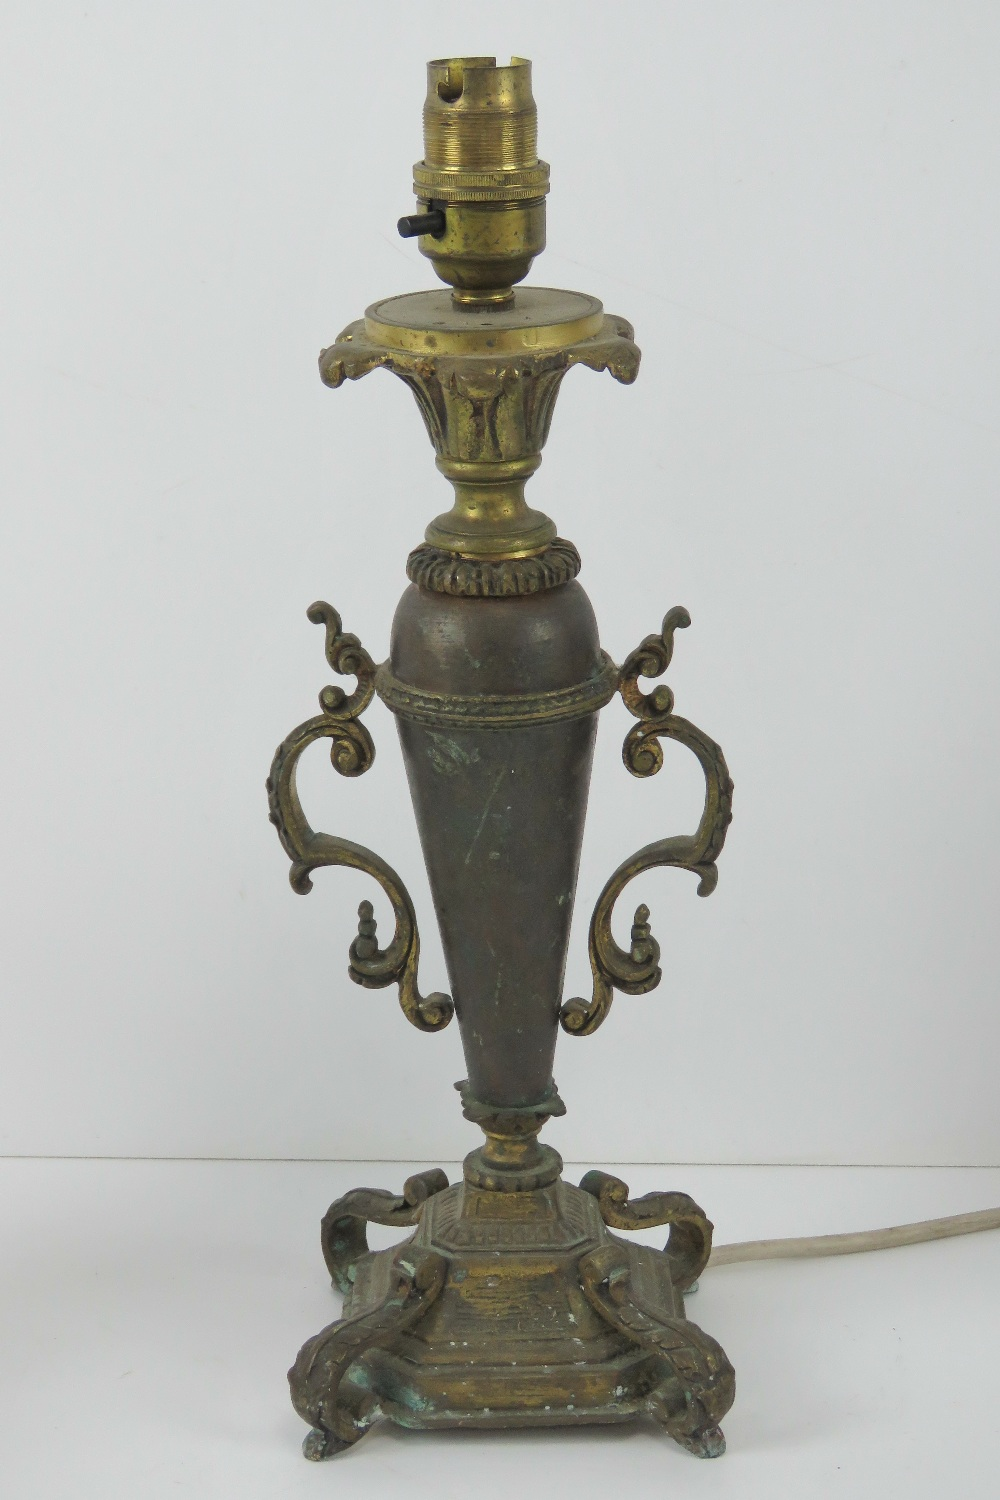 A brass table lamp in the form of an urn